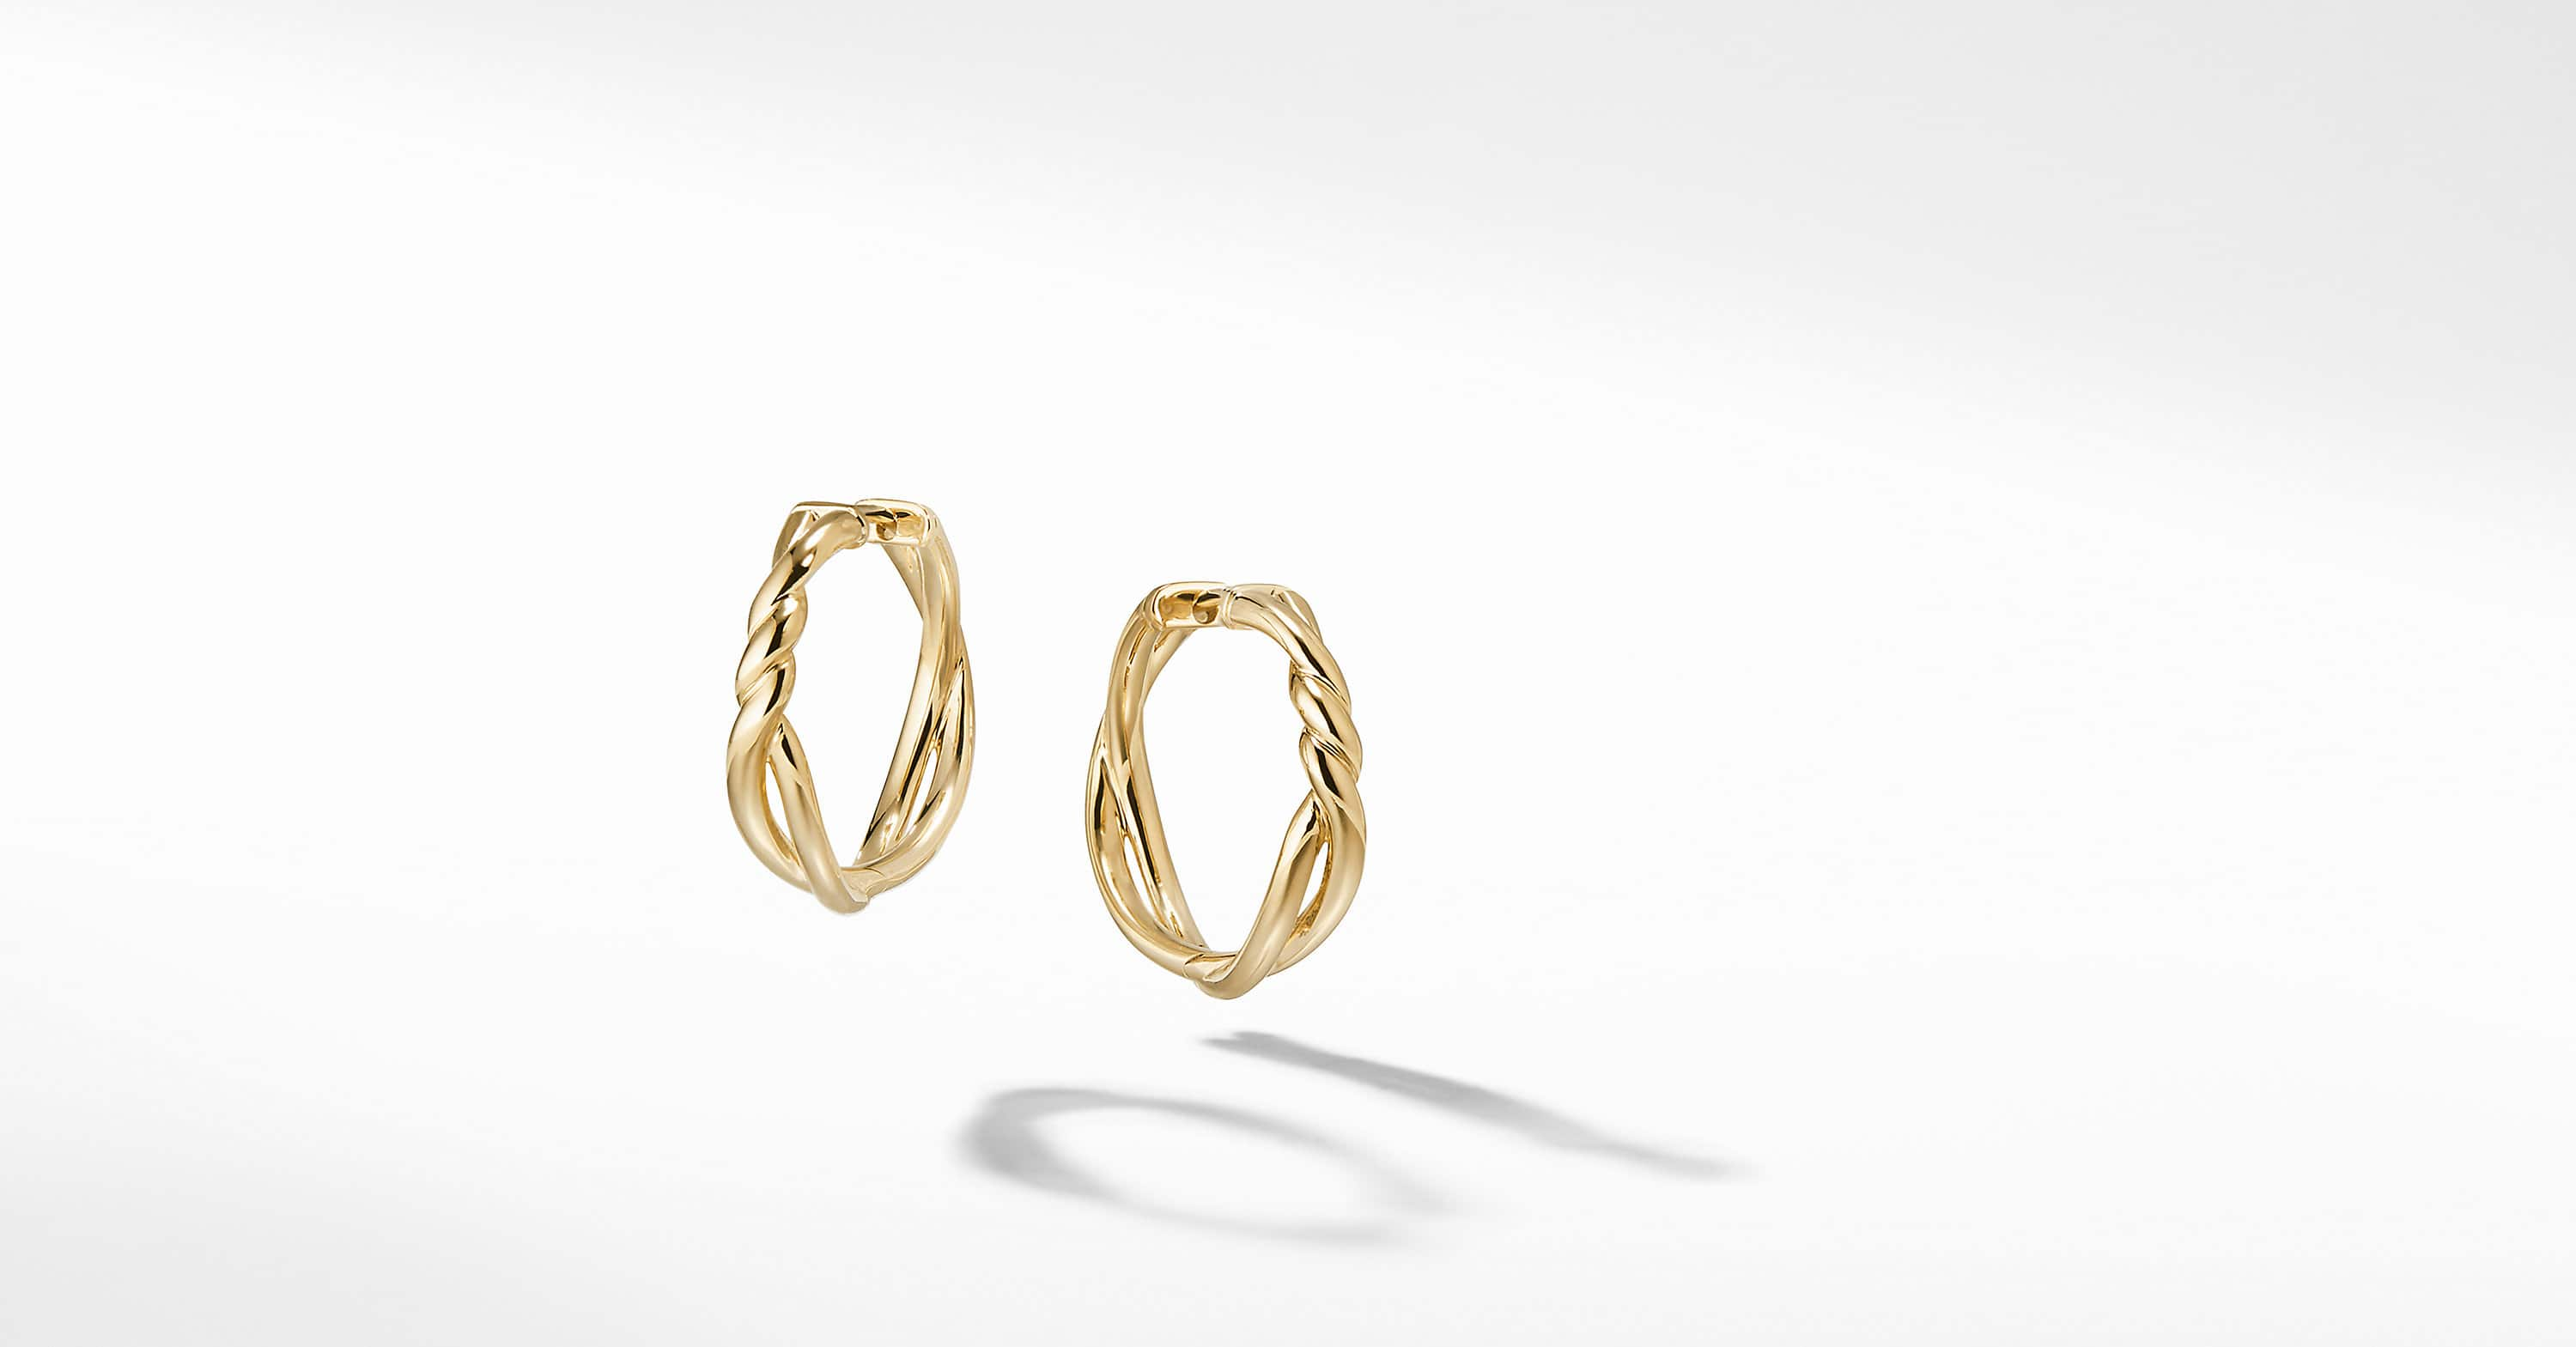 Continuance Hoop Earrings in 18K Gold